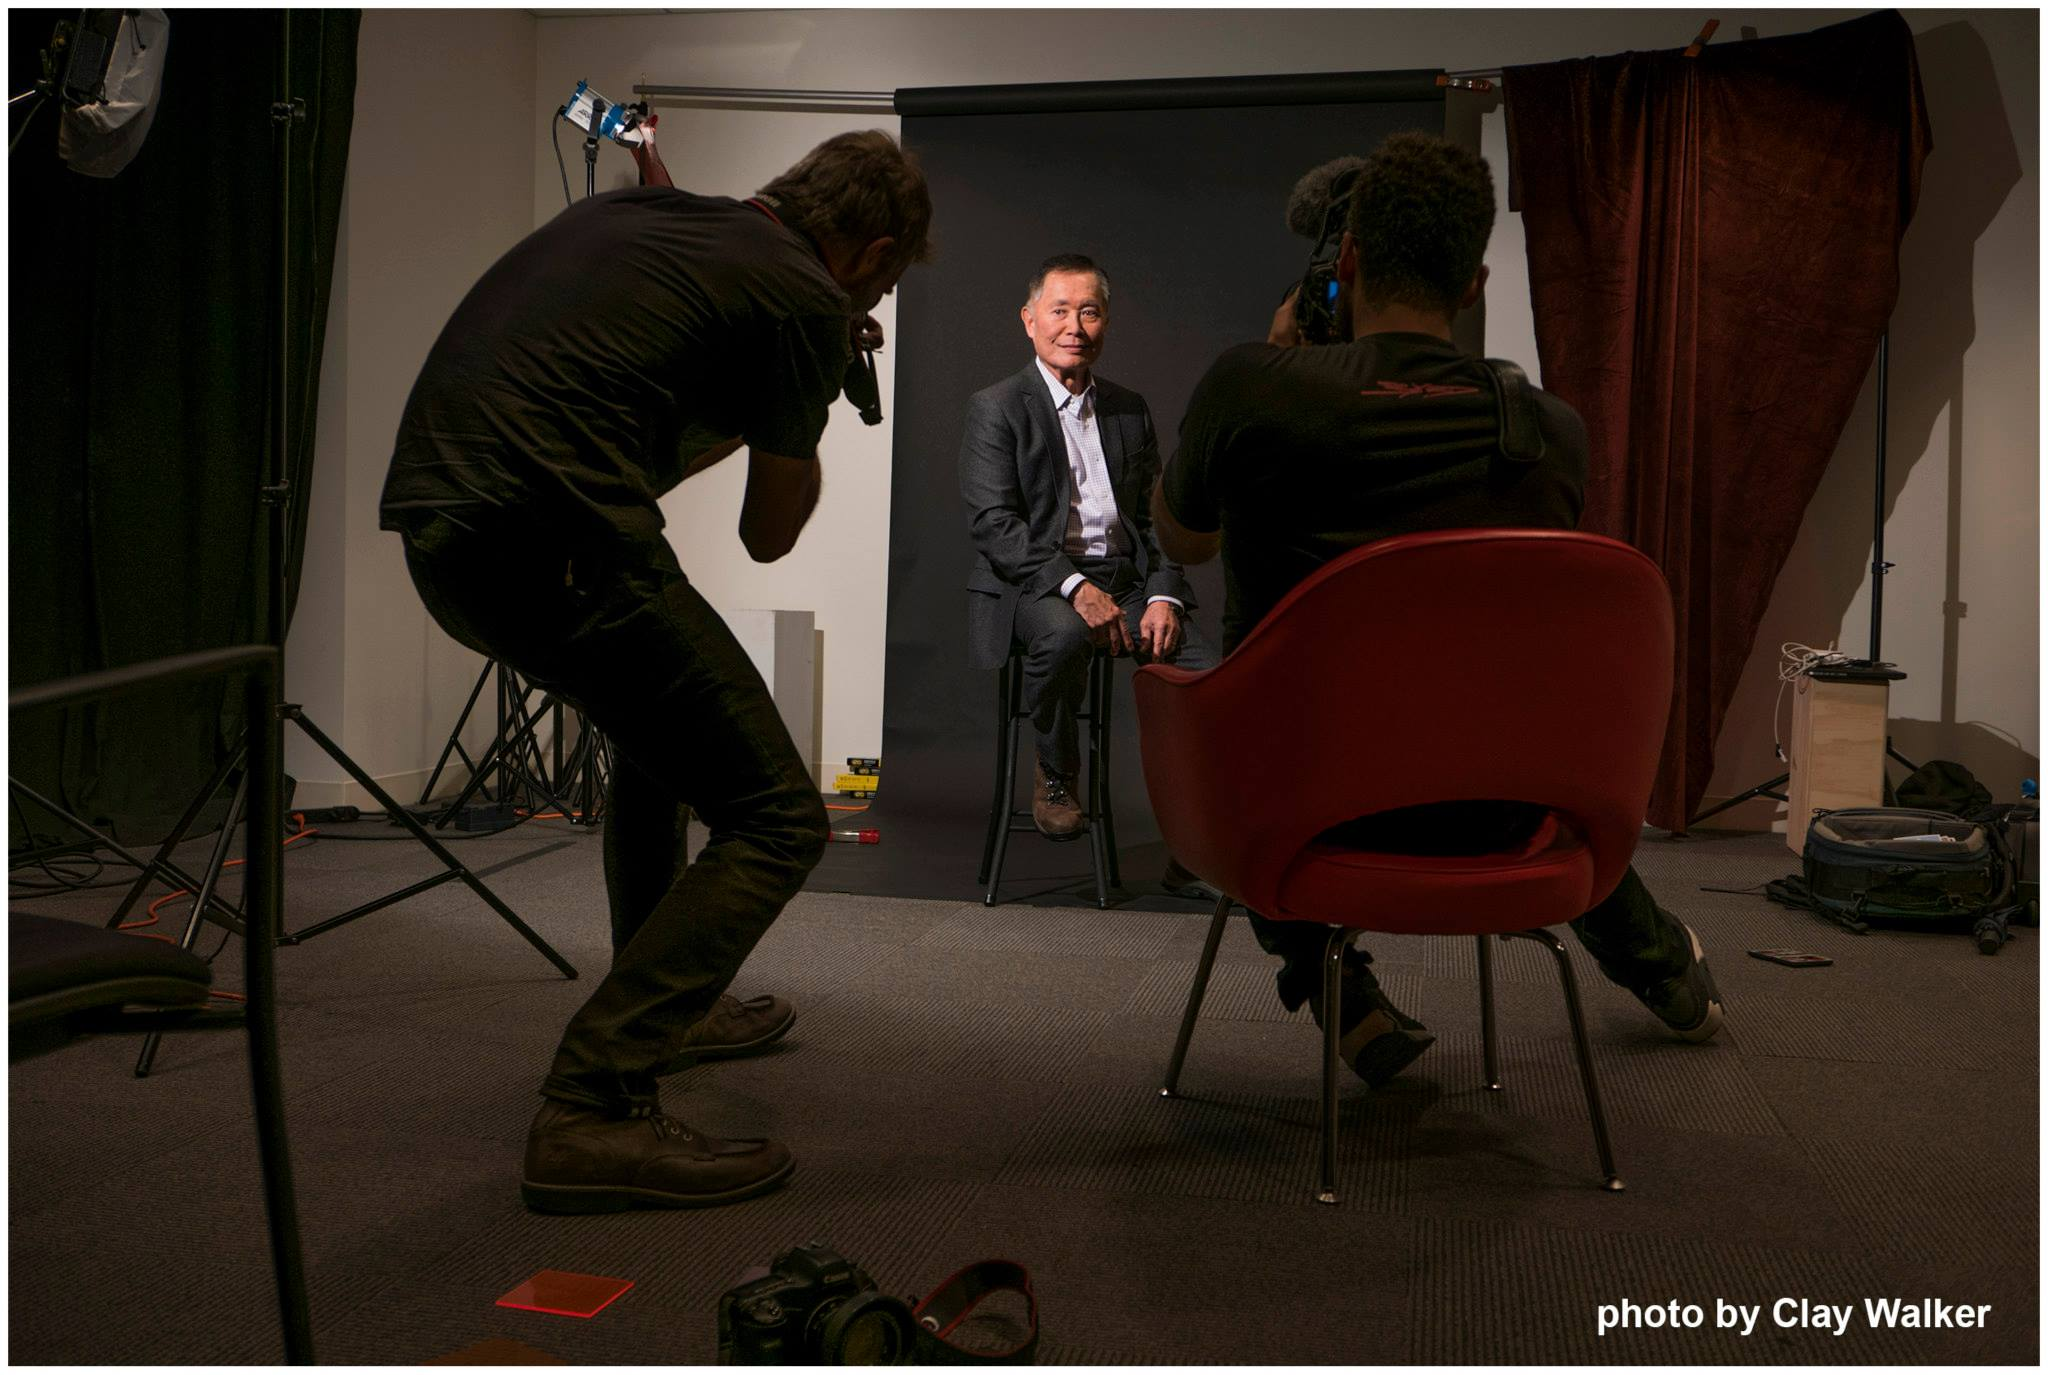 ben shaul photographing george takei for adweek ma walker clay